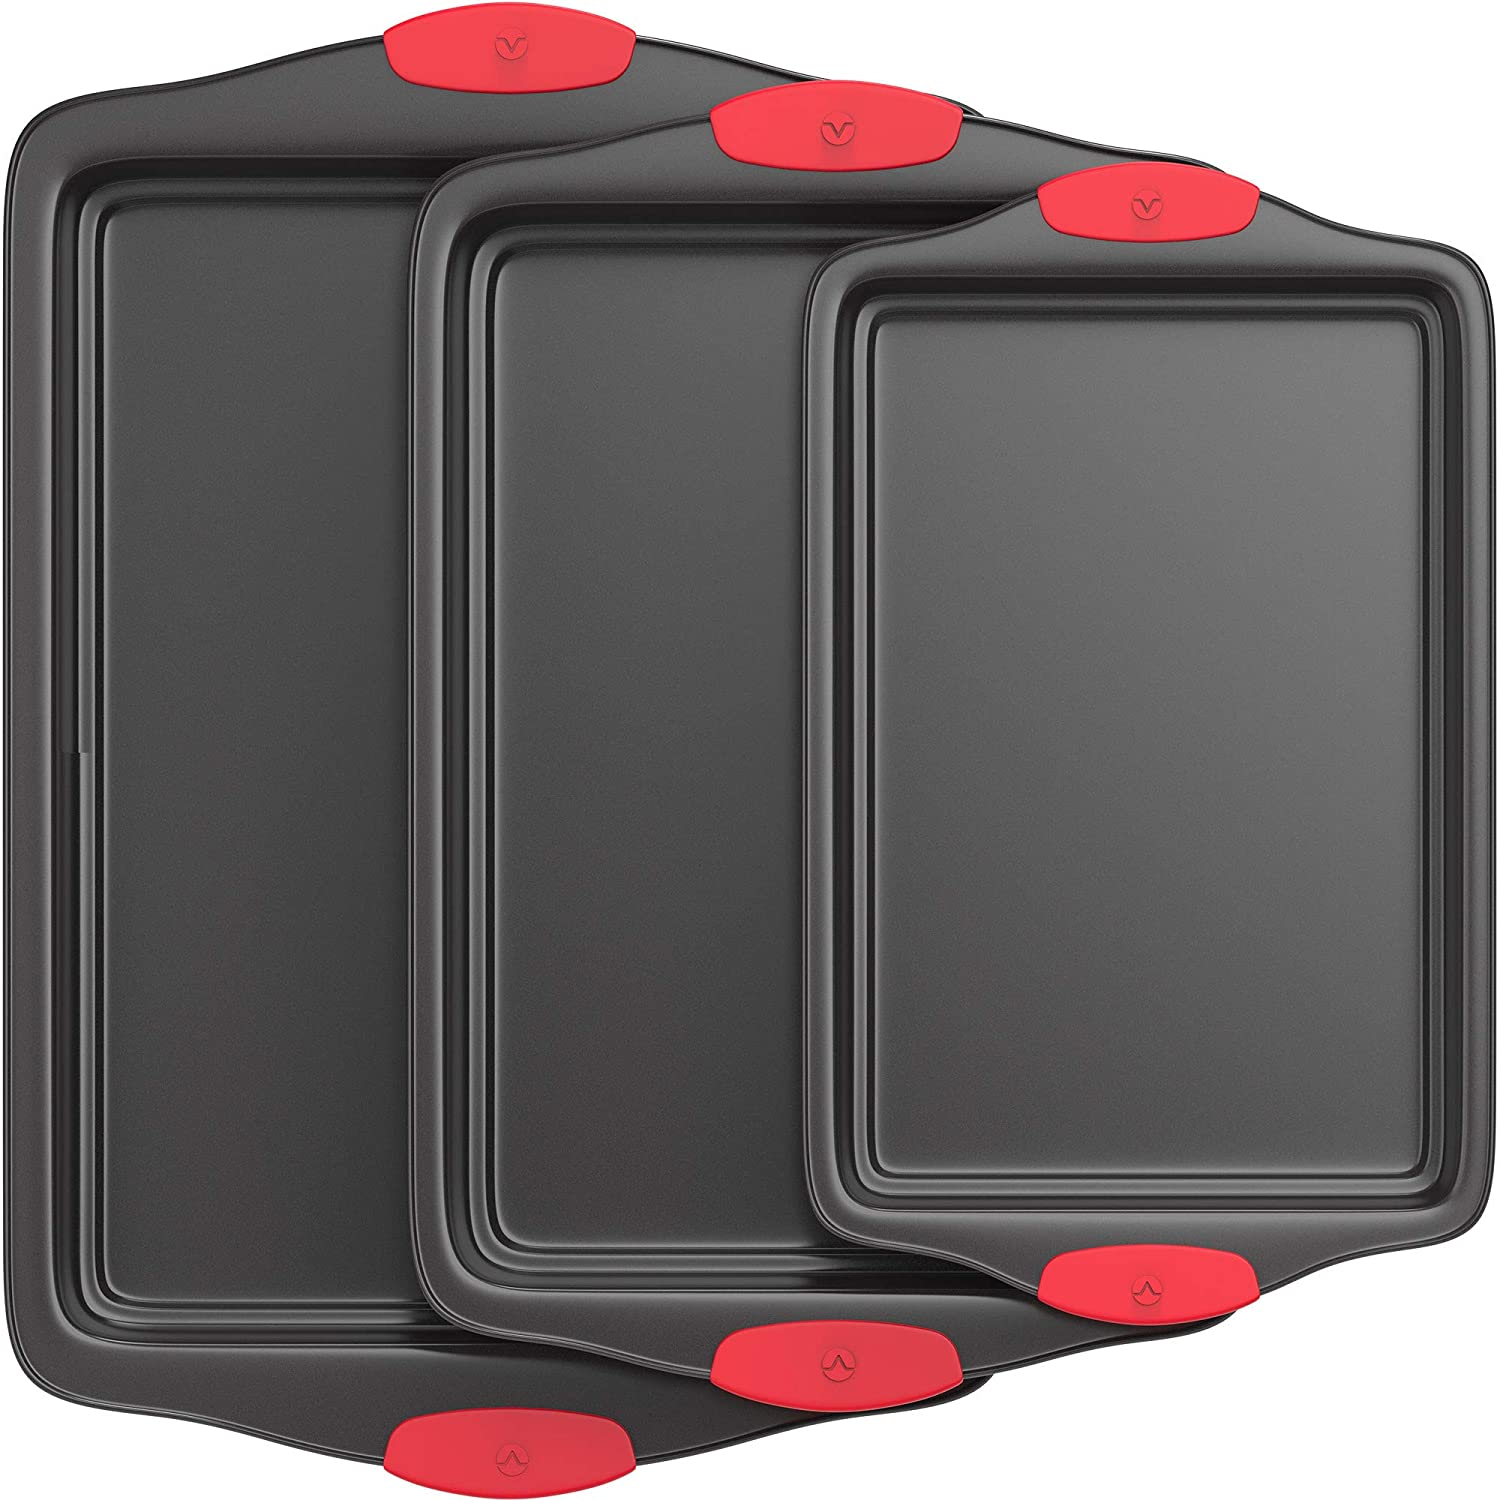 Vremi 3 Piece Baking Sheets Nonstick Set - Professional Non Stick Sheet Pan Set for Baking - Carbon Steel Baking Pans Cookie Sheets with Red Silicone Handles - has Quarter and Half Sheet Pans VRM020032N